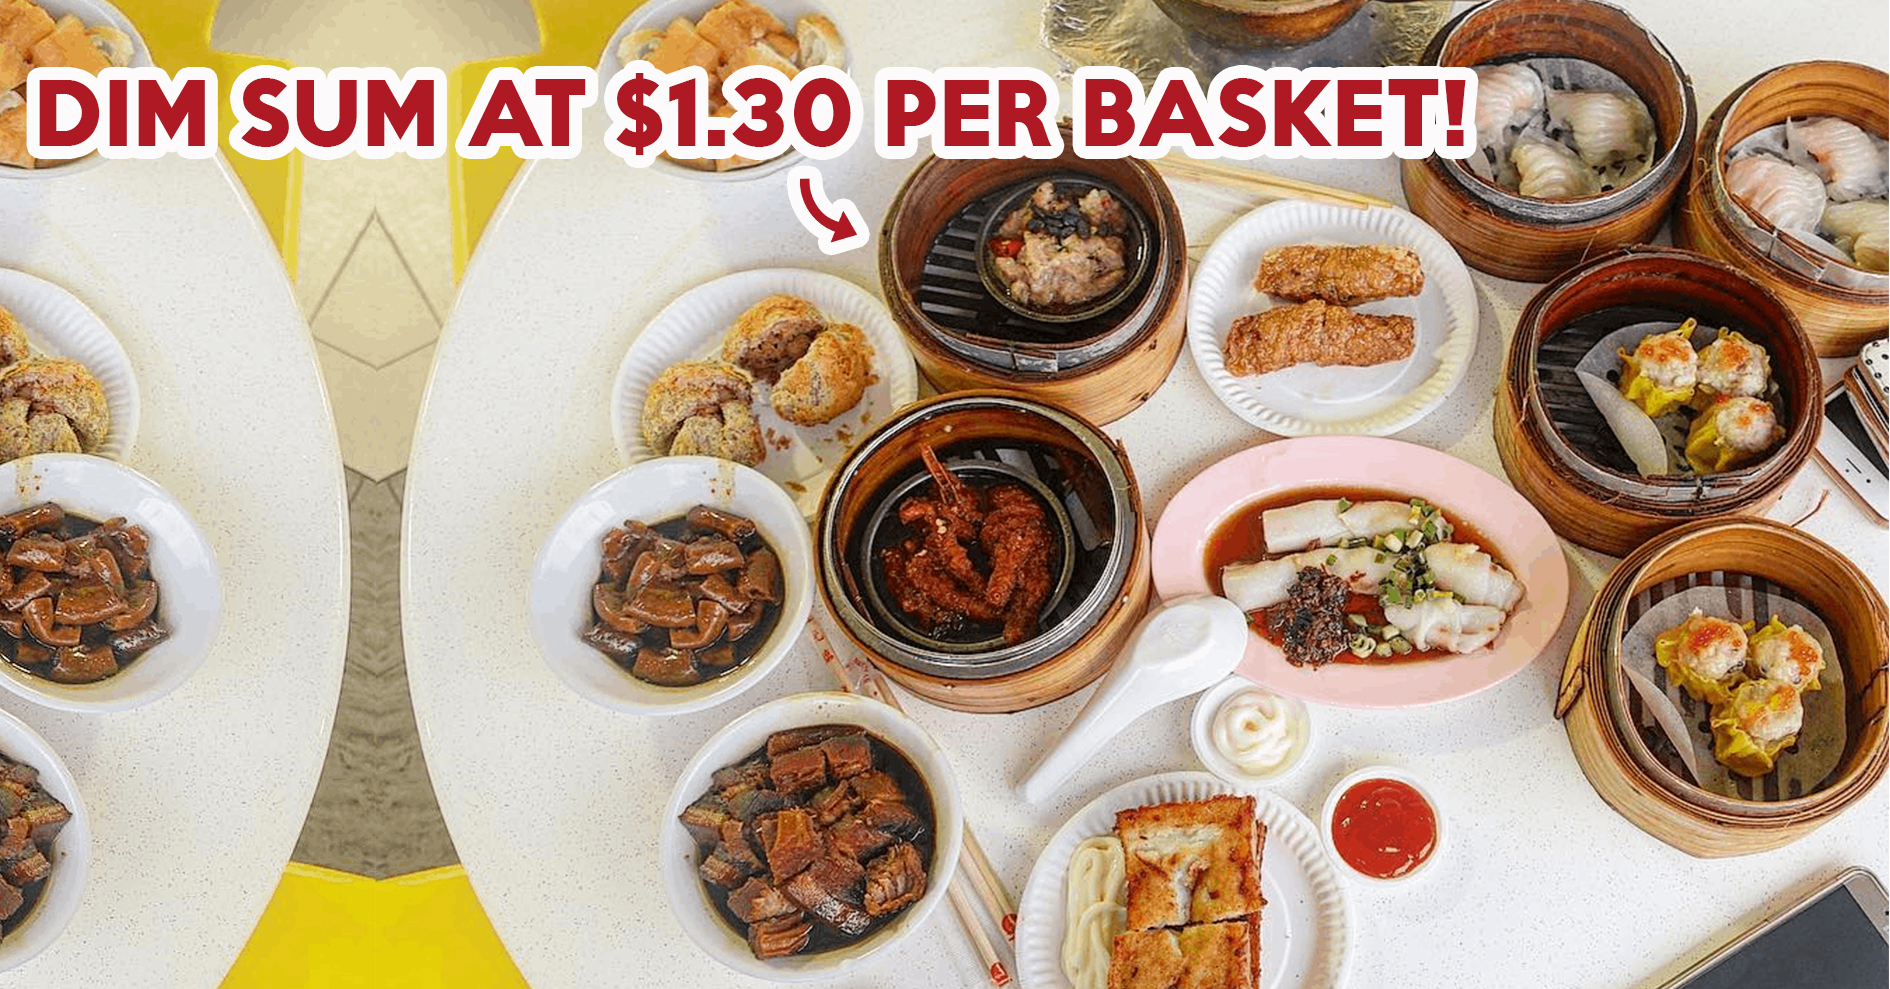 10 Cheap And Good Dim Sum Eateries So You Don't Need To Rely On Swee Choon